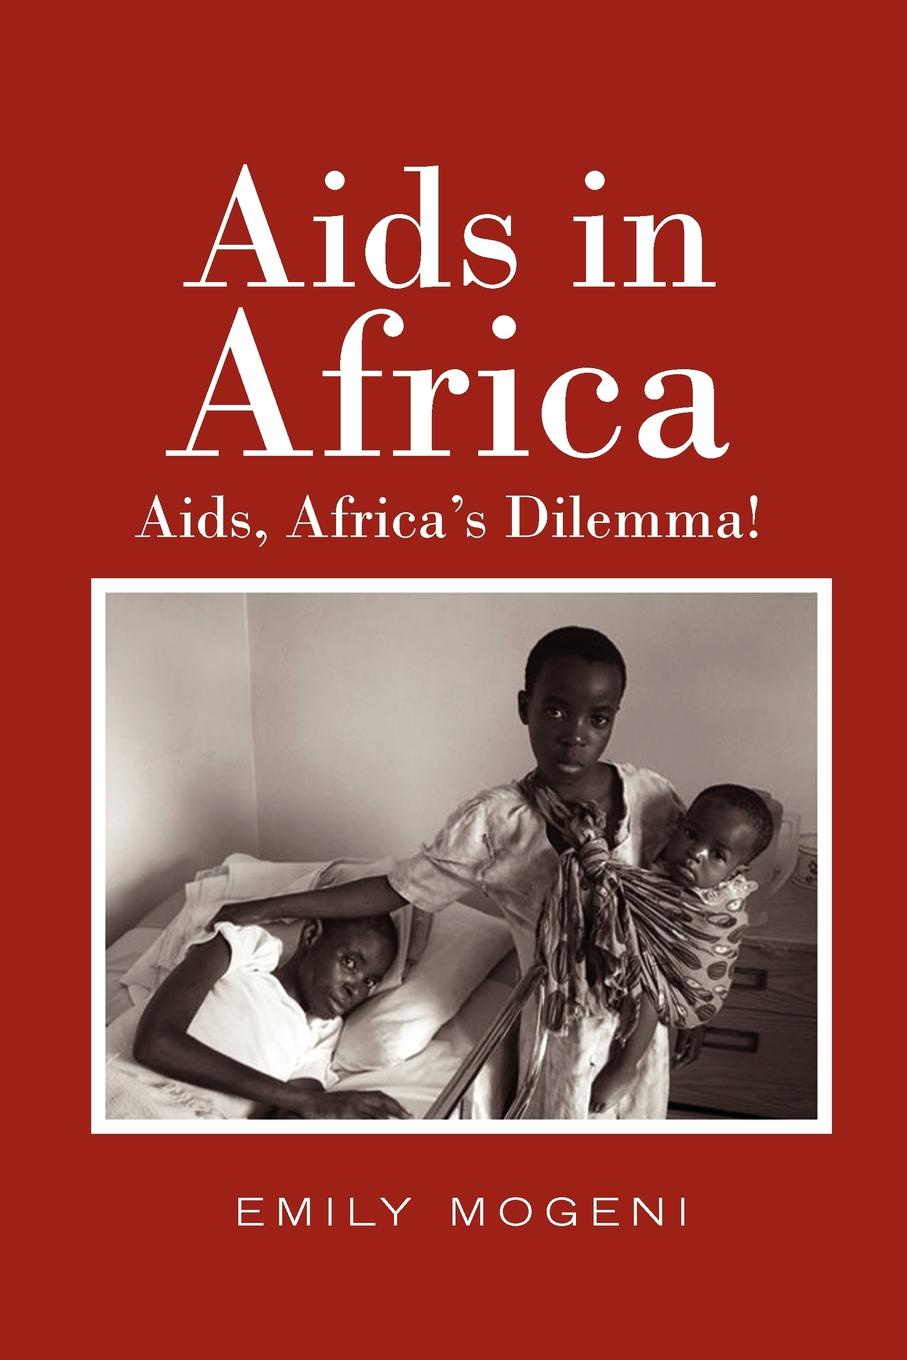 Emily Mogeni Aids in Africa. Aids, Africa's Dilemma! de vecchi italy s civilizing mission in africa